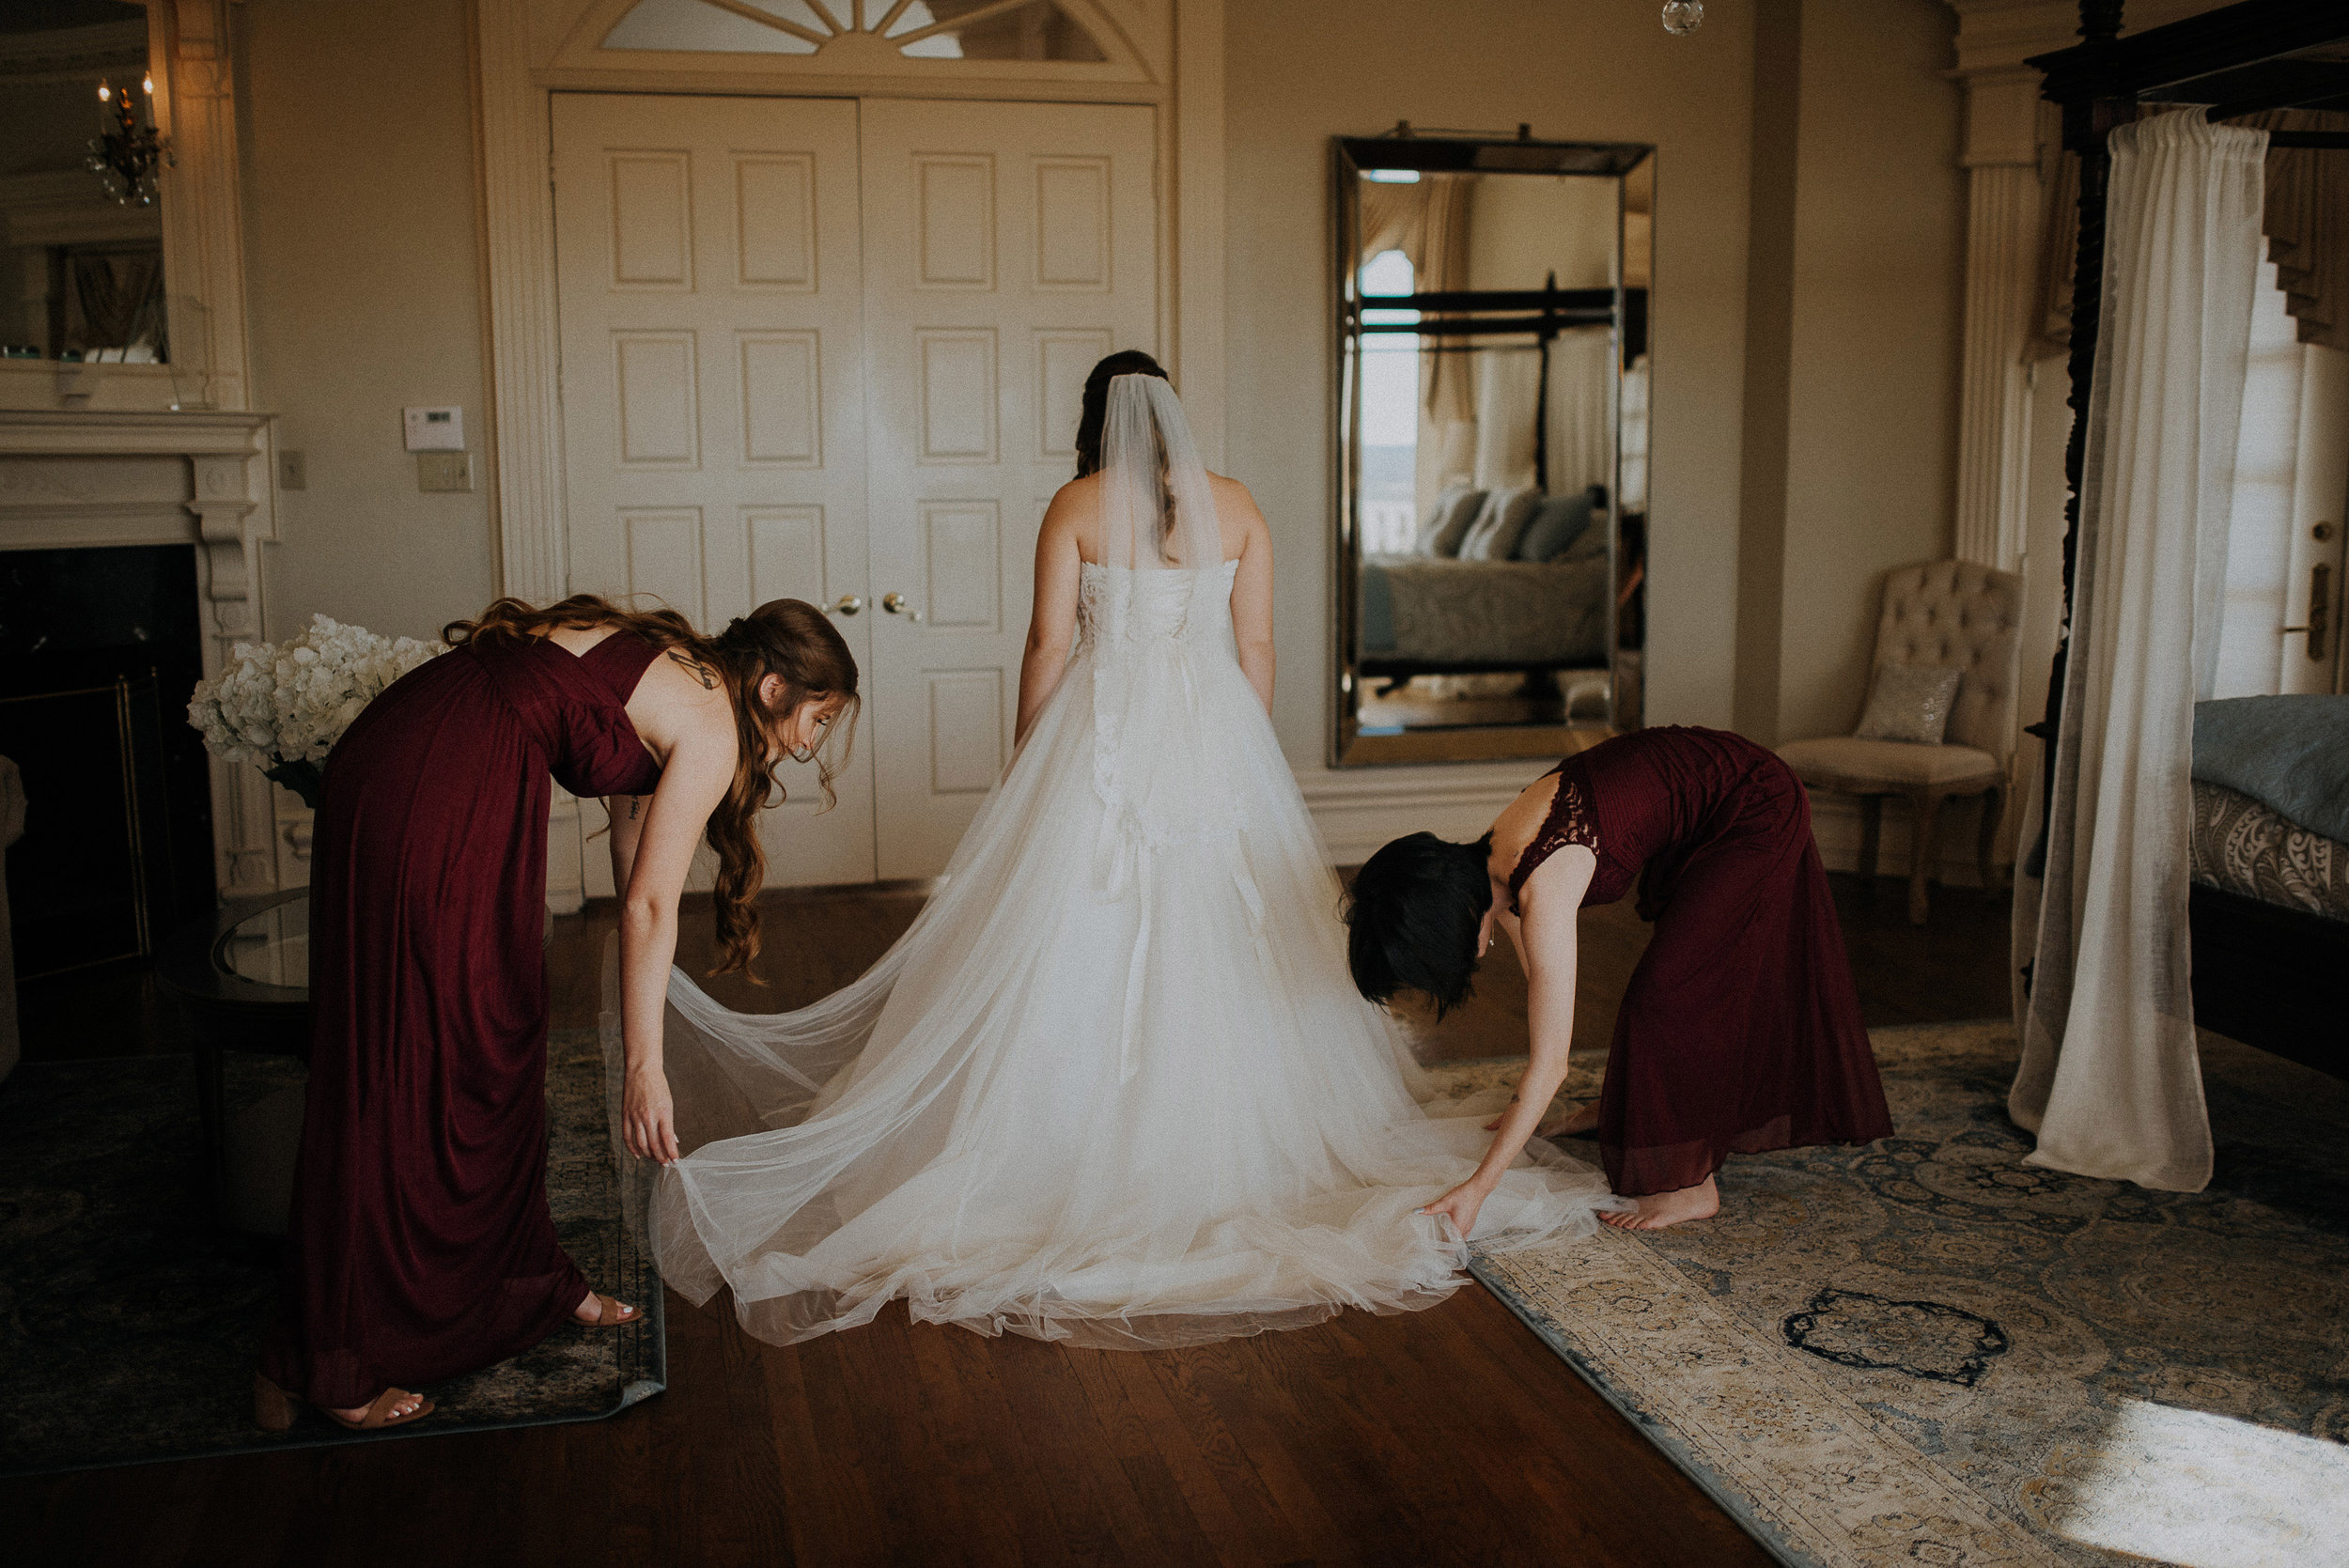 Dallas_Fort_Worth_wedding_Photographer_lone_star_mansion_burleson_texas_32